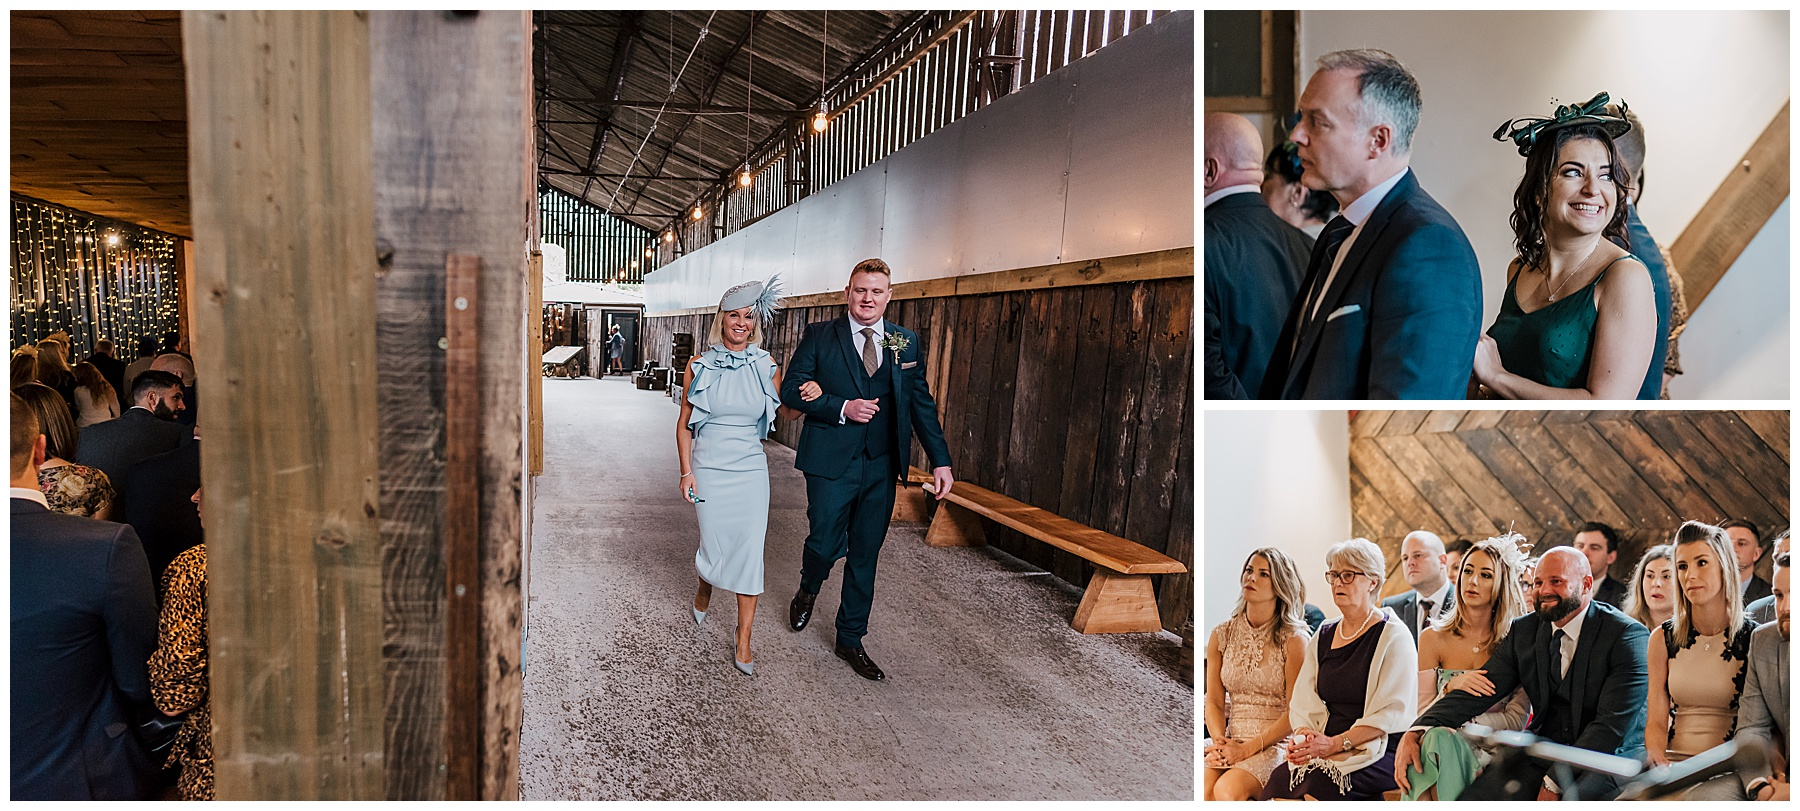 A Bonfire Weekend Wedding at Owen House Wedding Barn